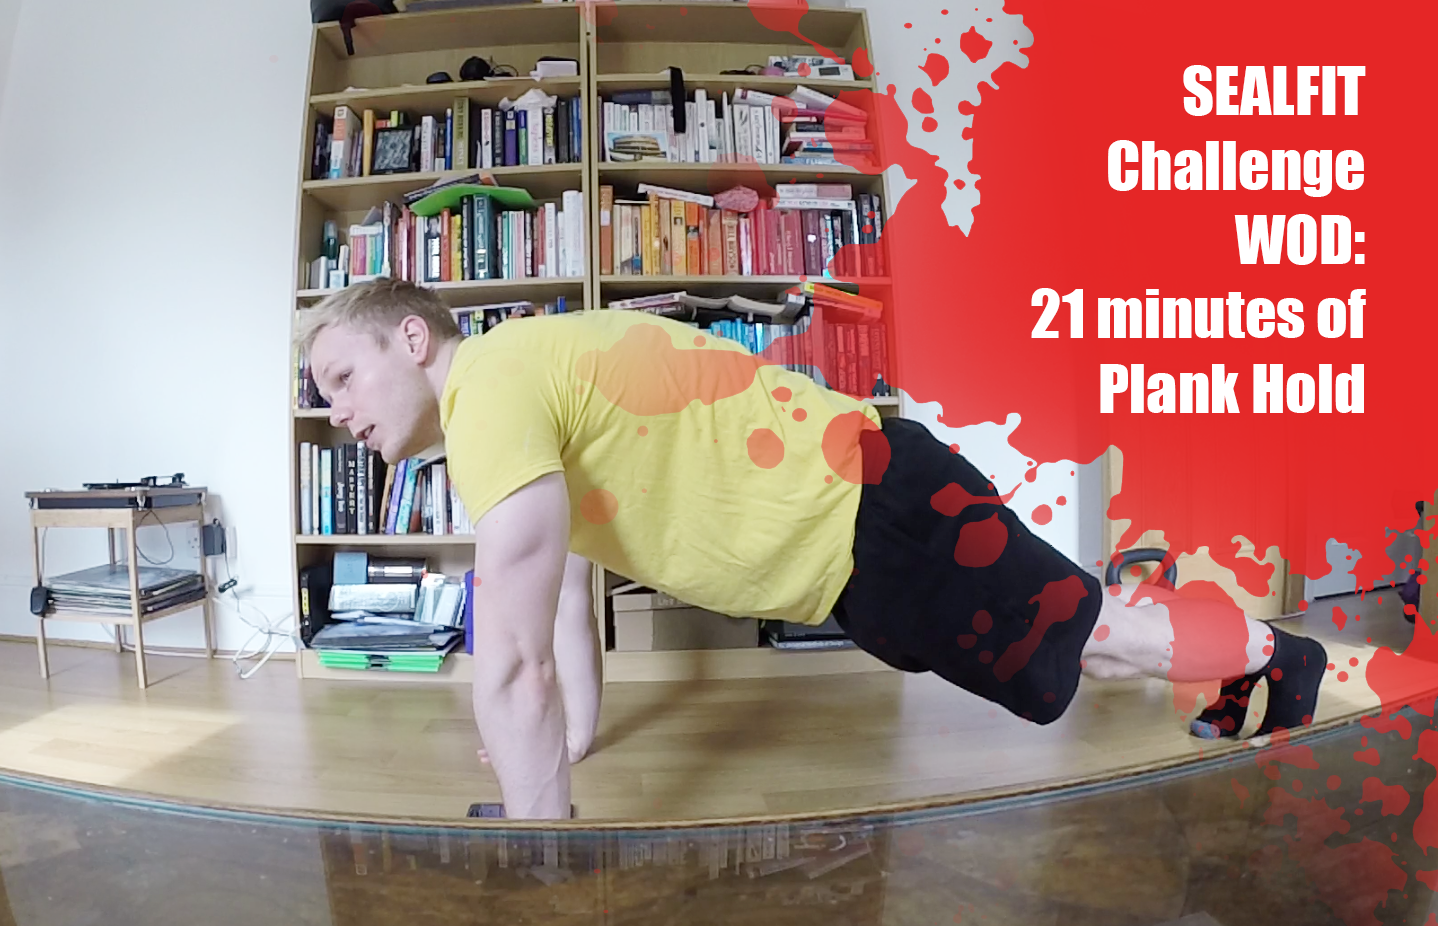 Week 23 Challenge: 21 Minute of Plank Hold